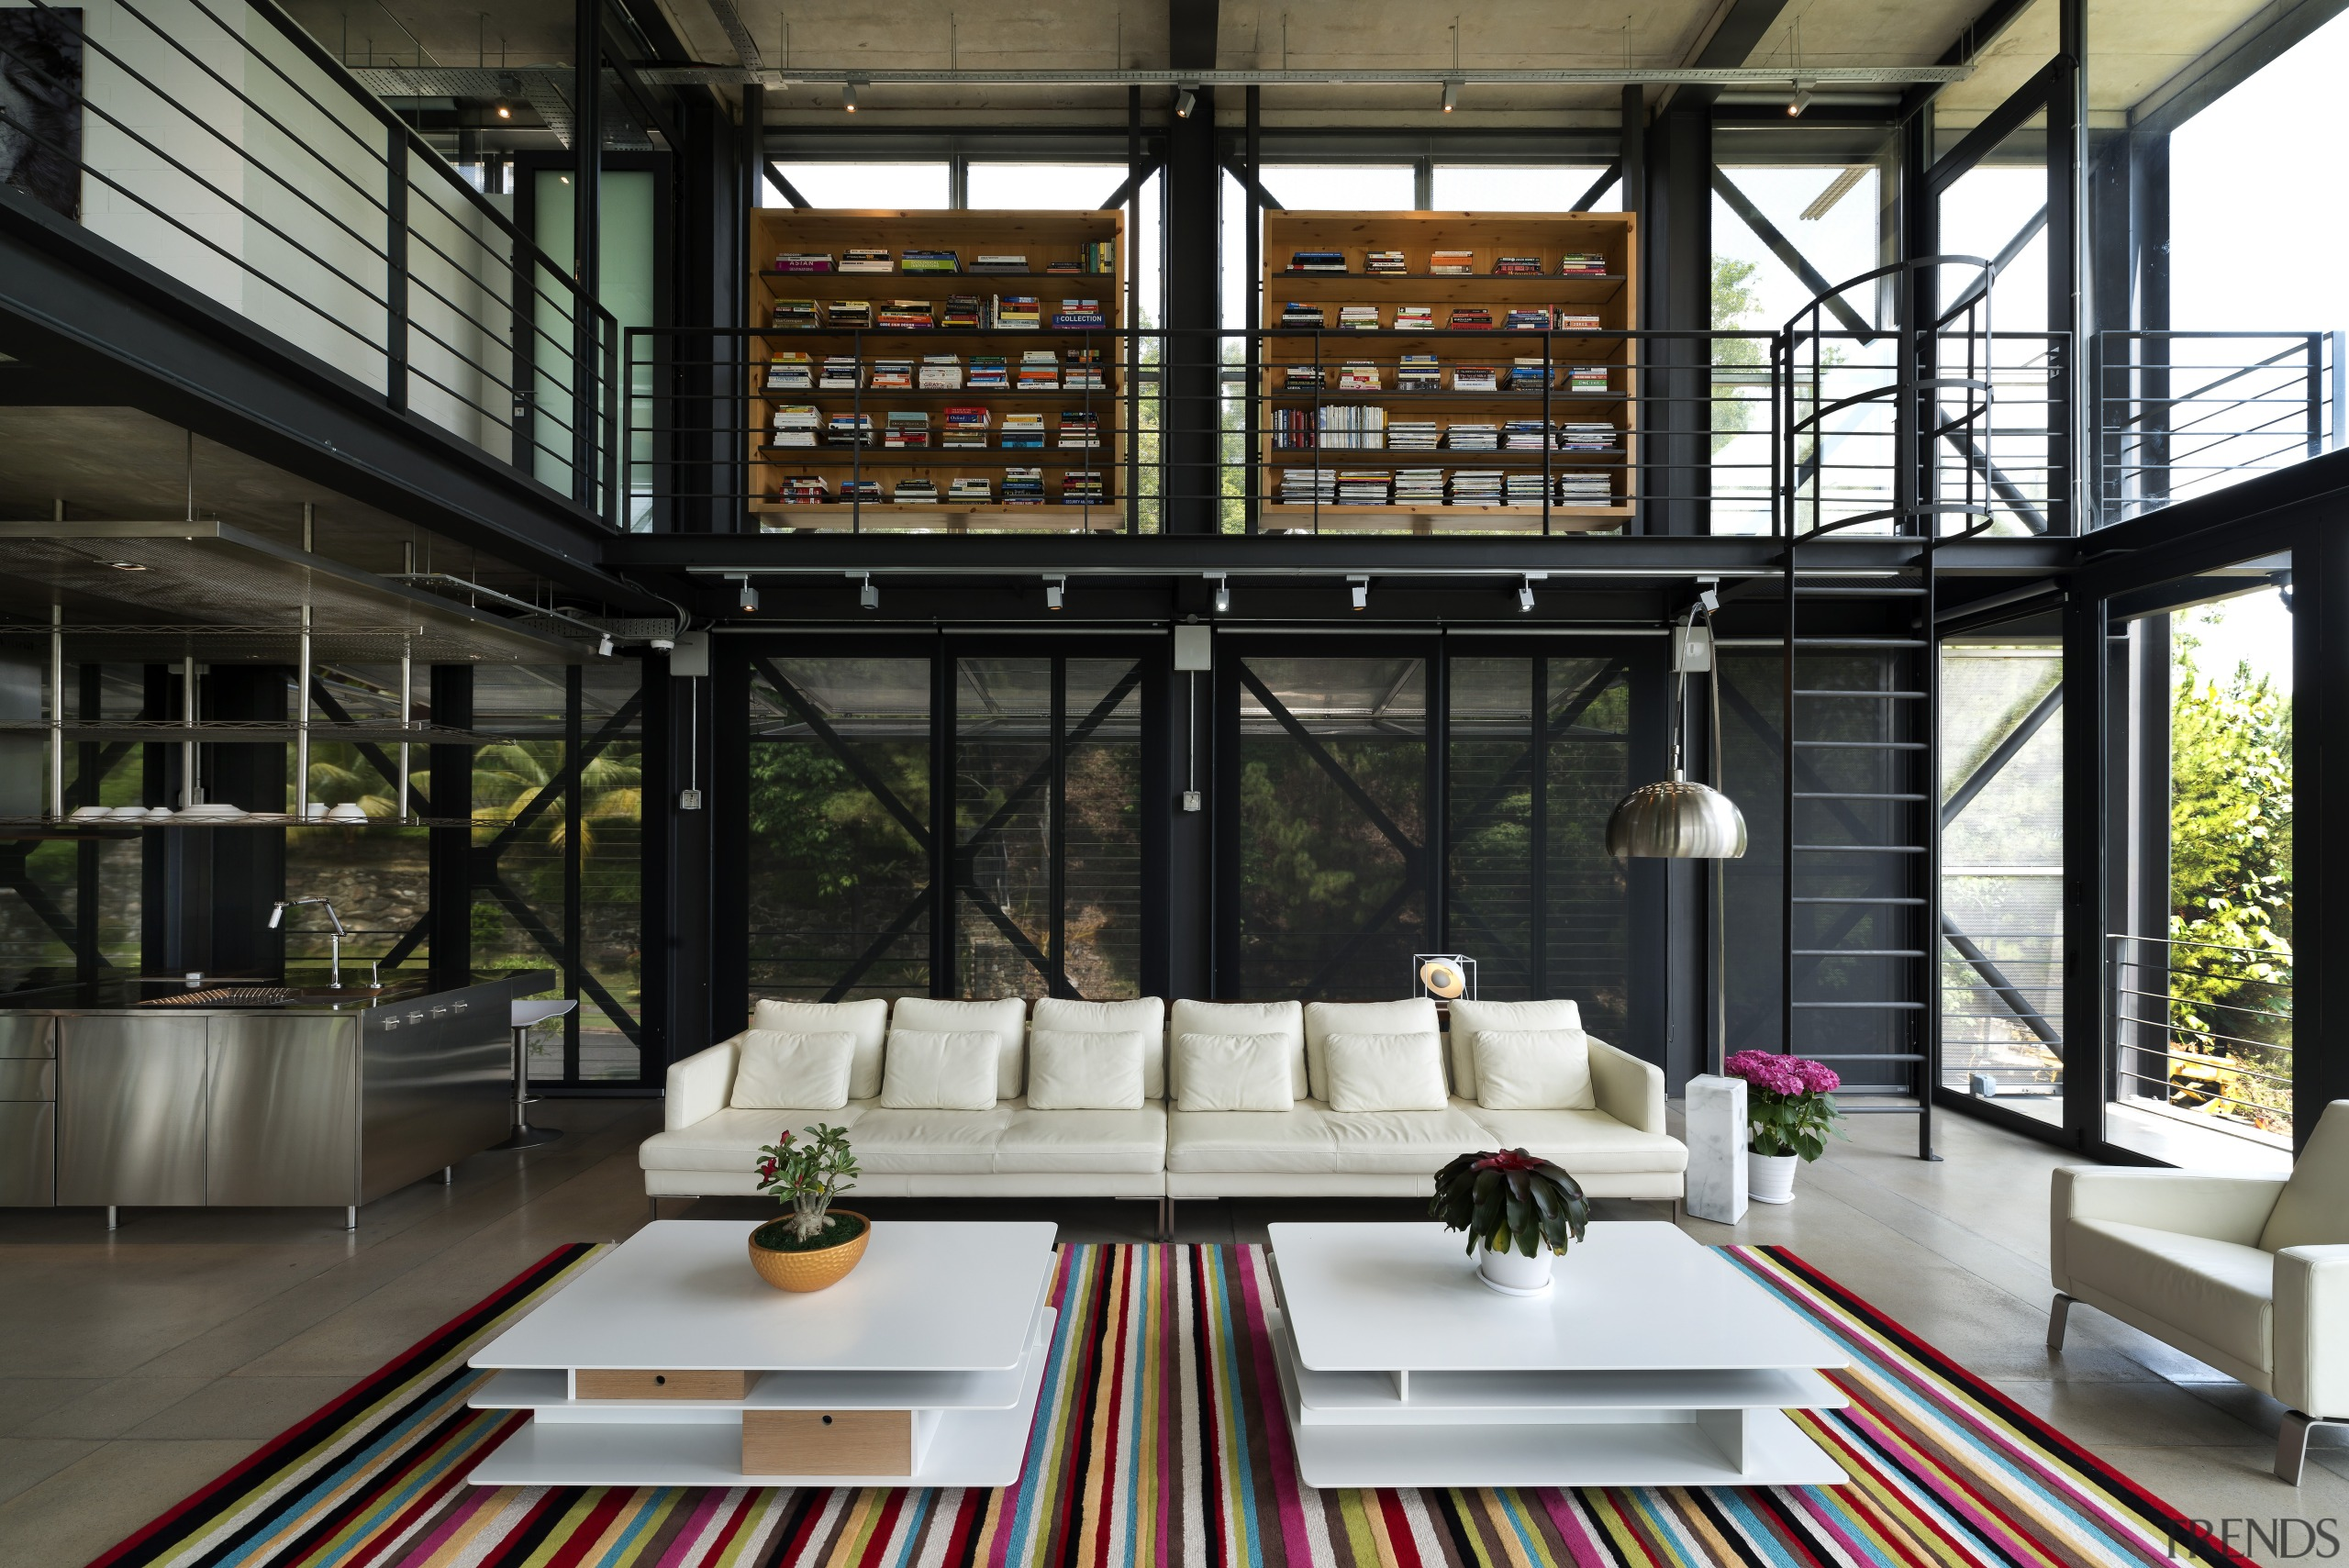 This double-height living area has a walkway and daylighting, interior design, living room, window, black